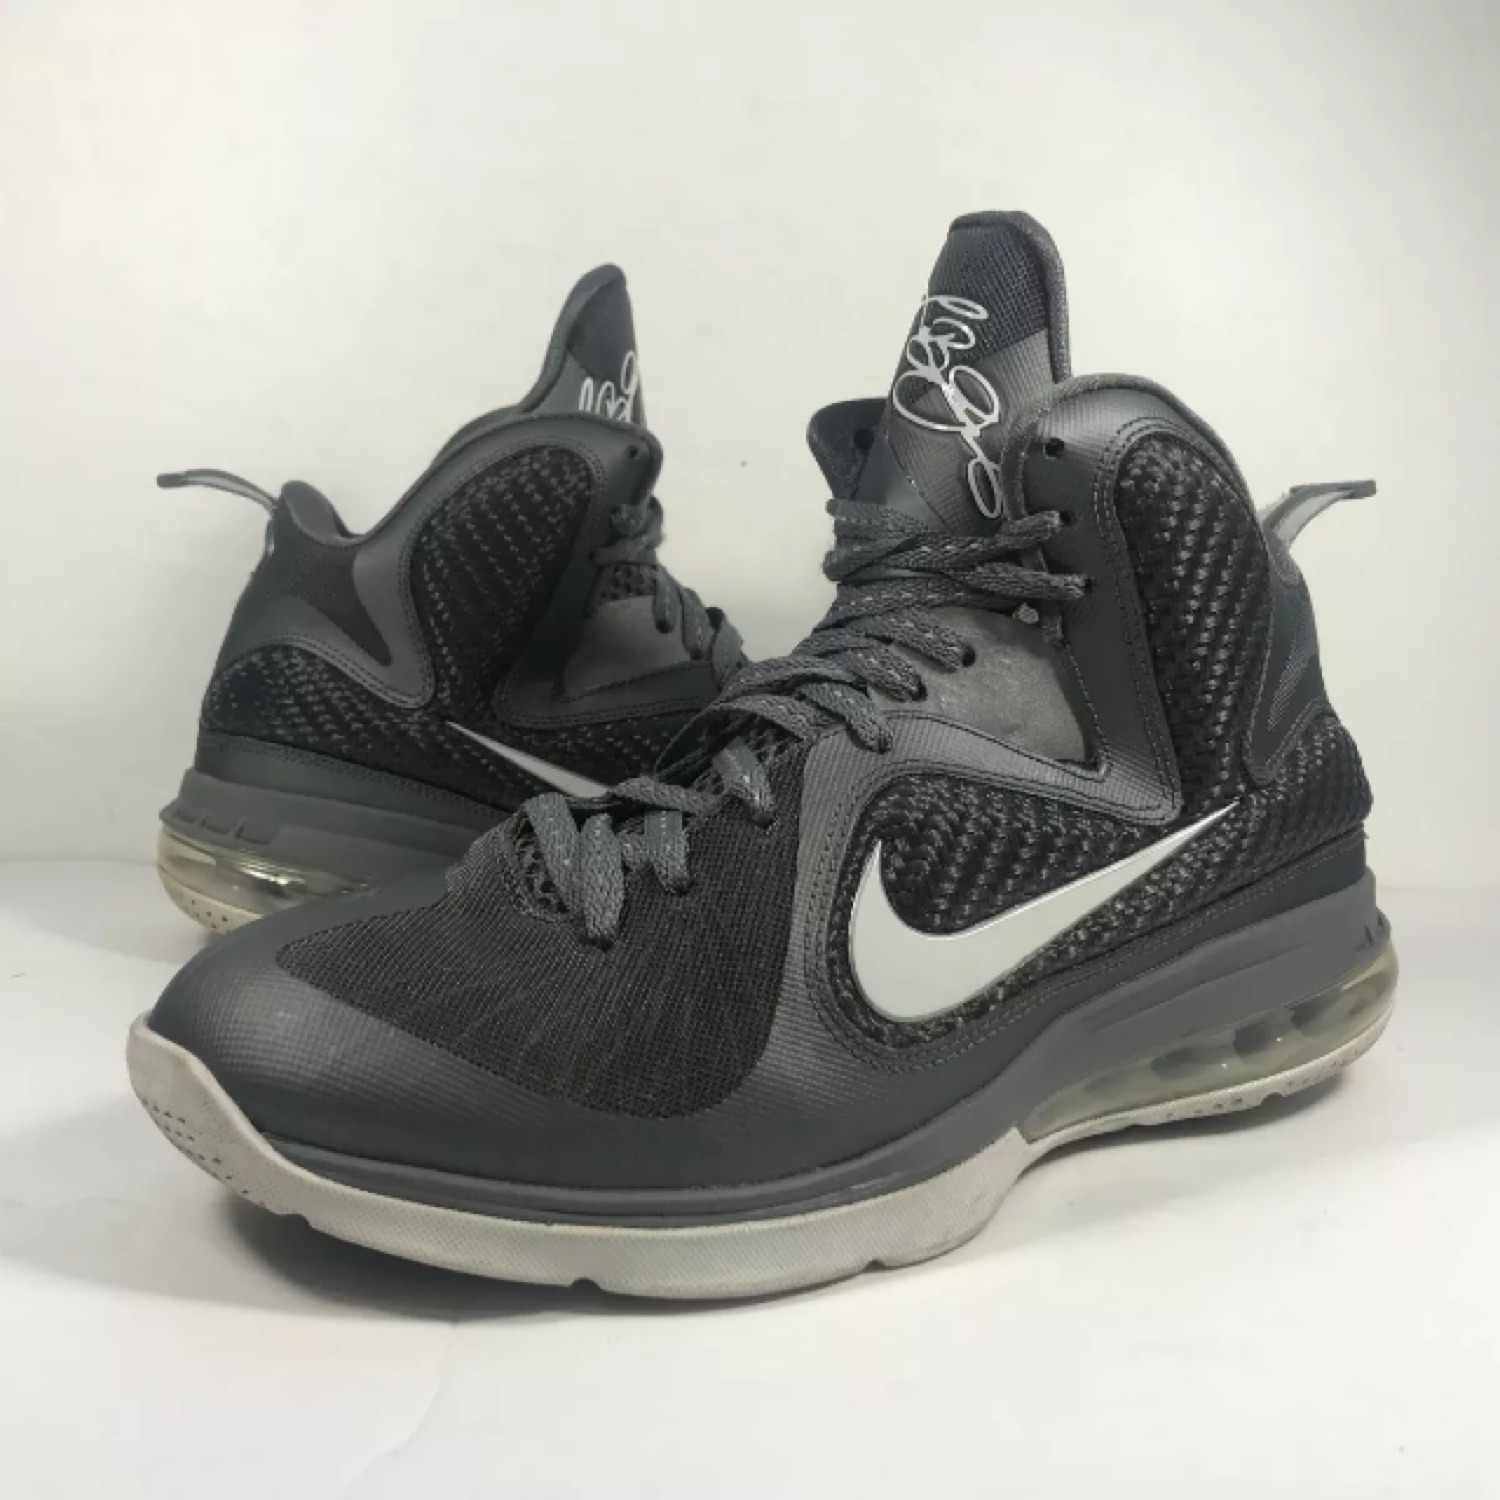 timeless design a2d69 48033 Nike Lebron James 9 Cool Grey